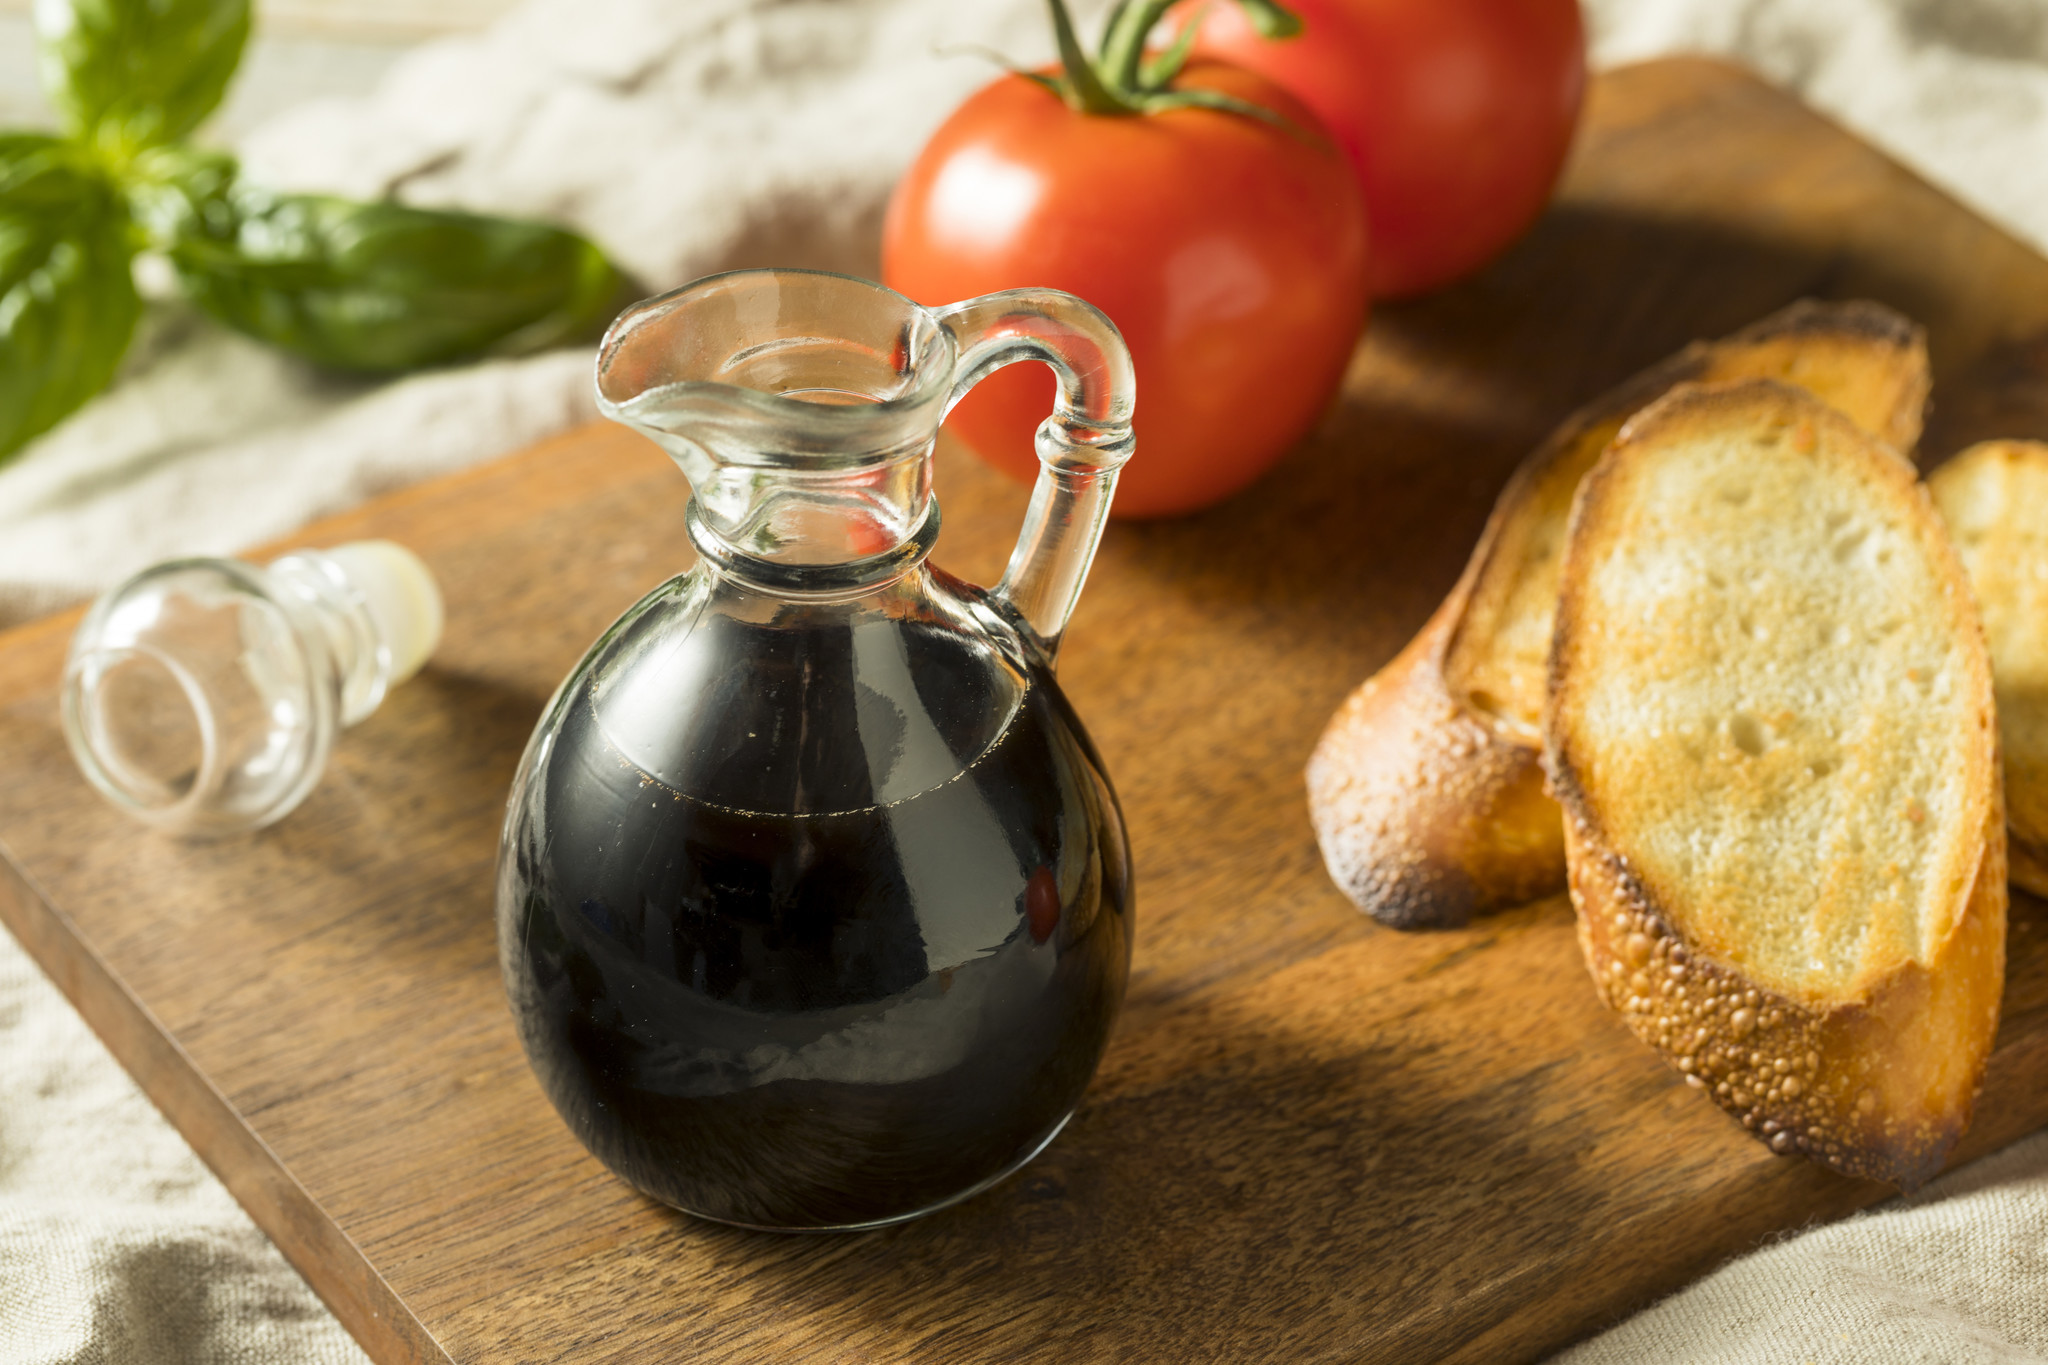 Court rules Italian vinegar manufacturers do not exclusively own the term 'balsamic'